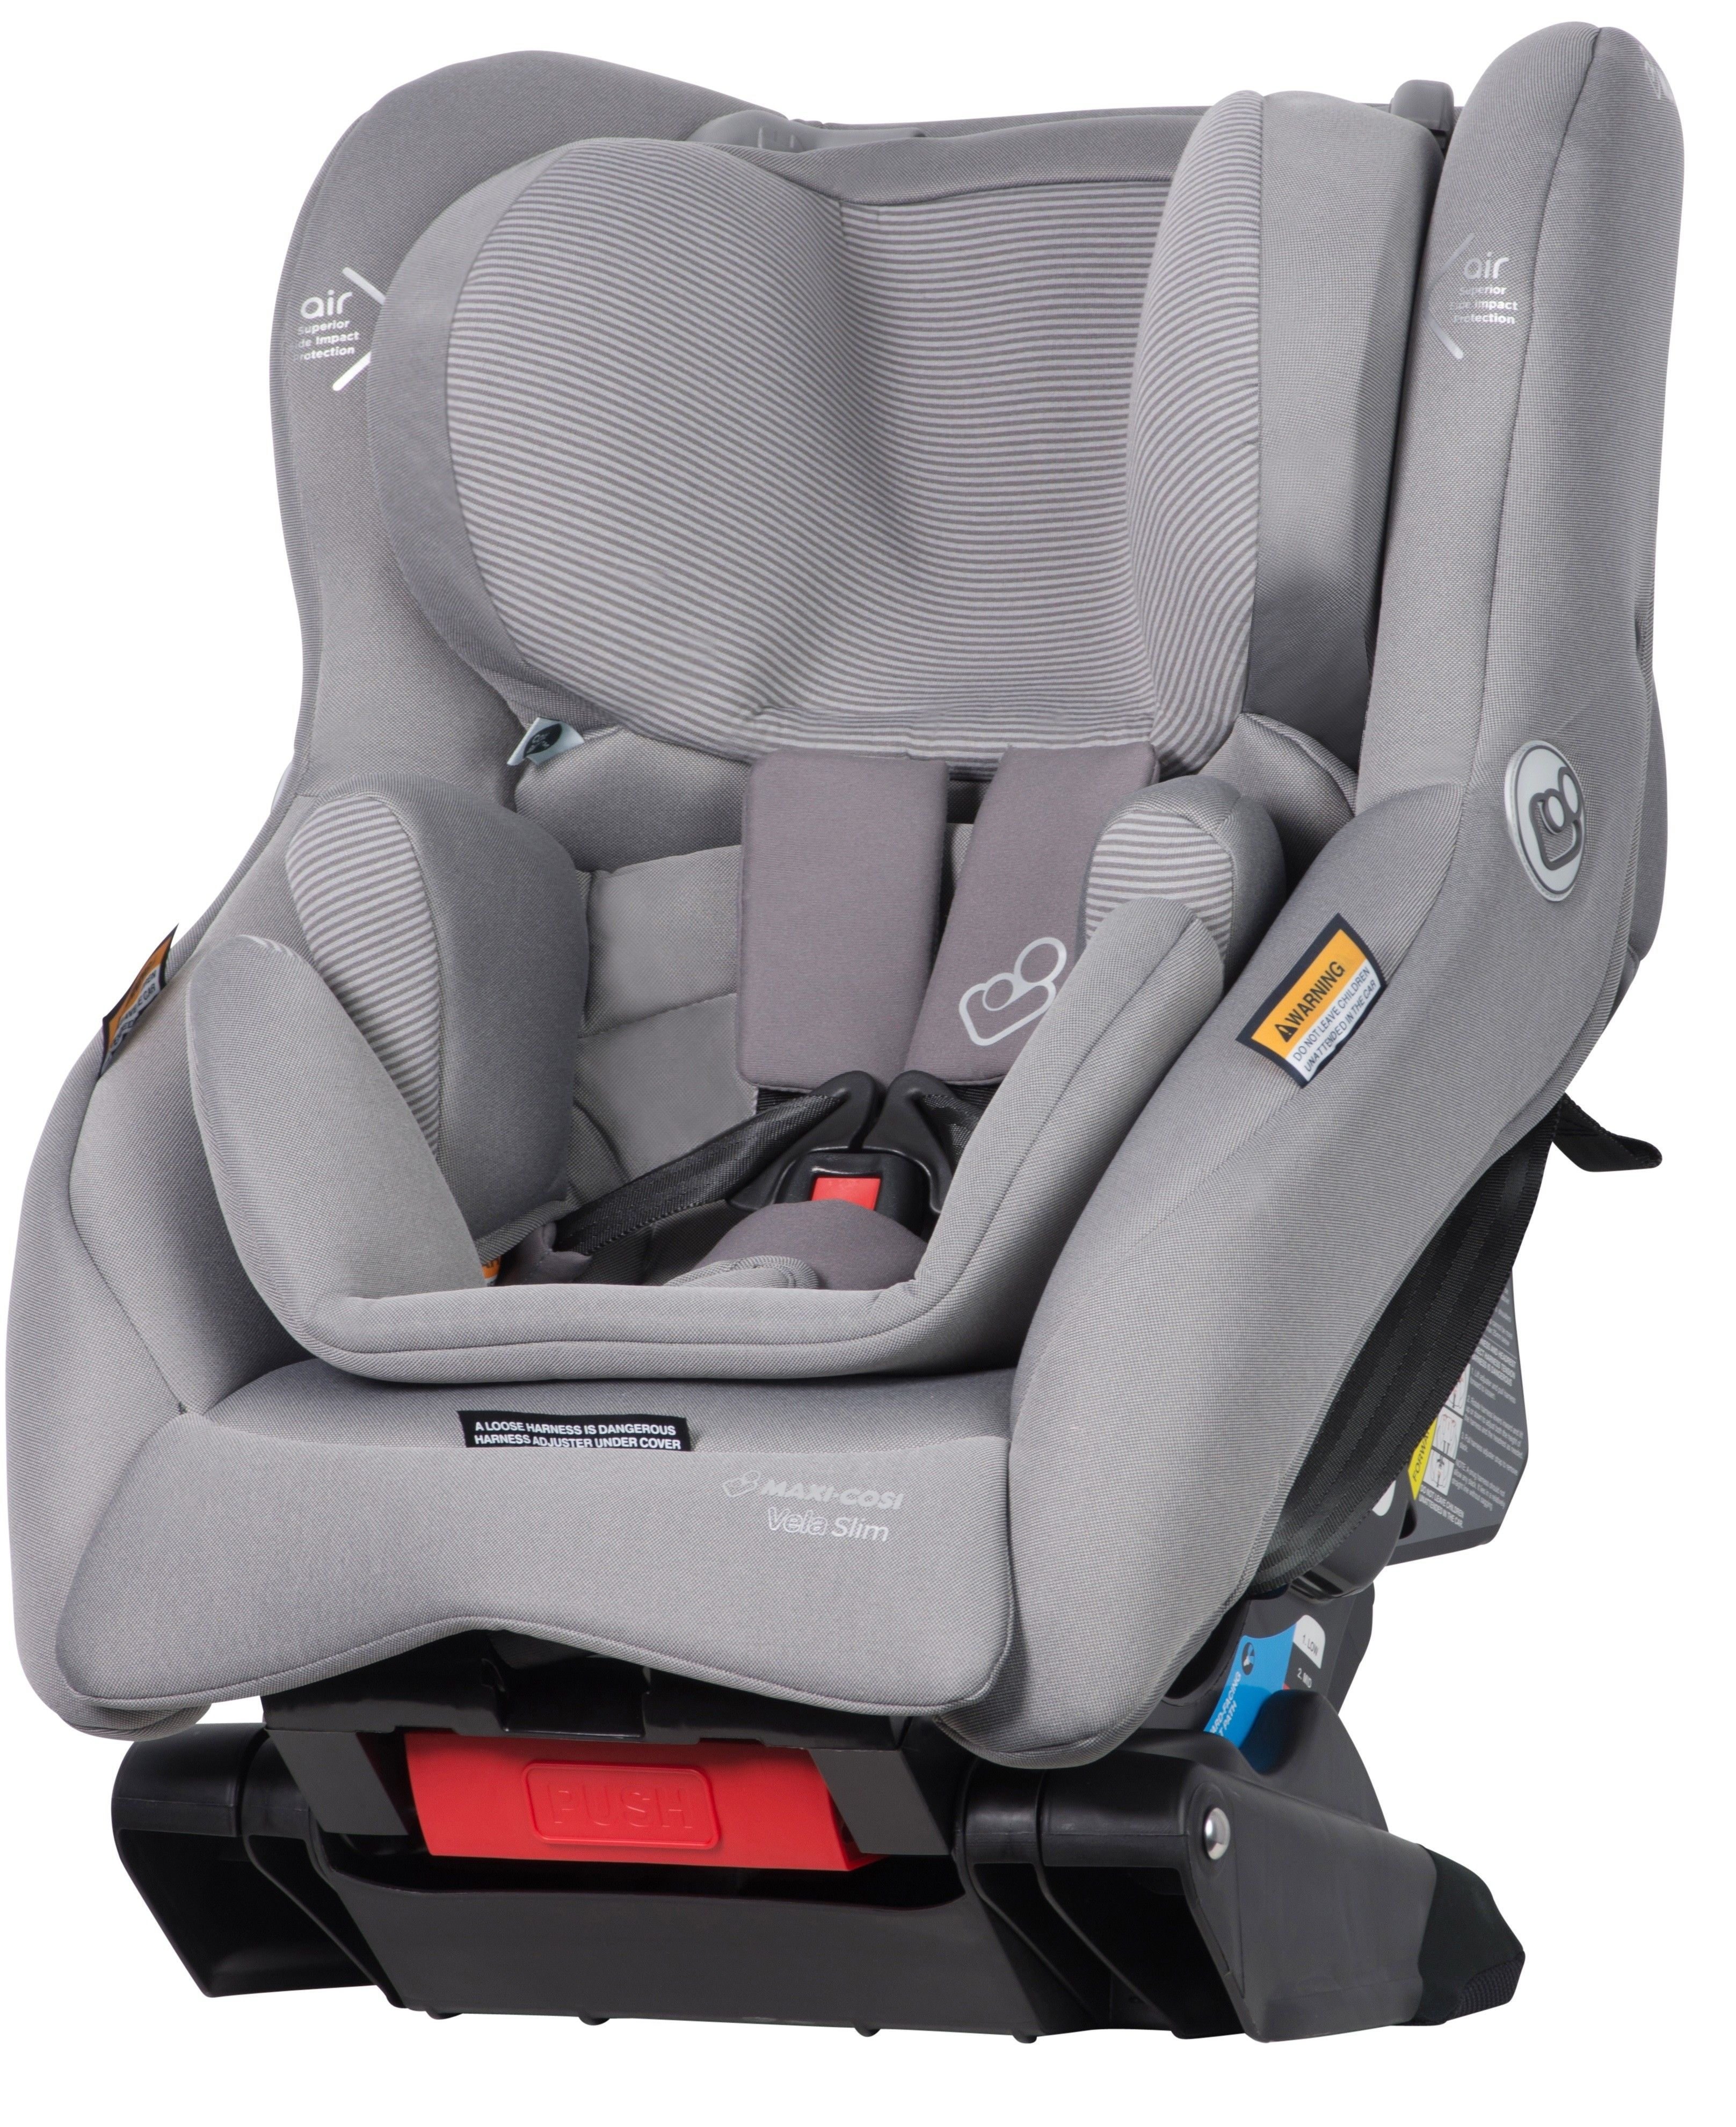 Maxi Cosi Baby Car Seat How To Install The Maxi Cosi Vela Slim Convertible Booster Seat It Isofix